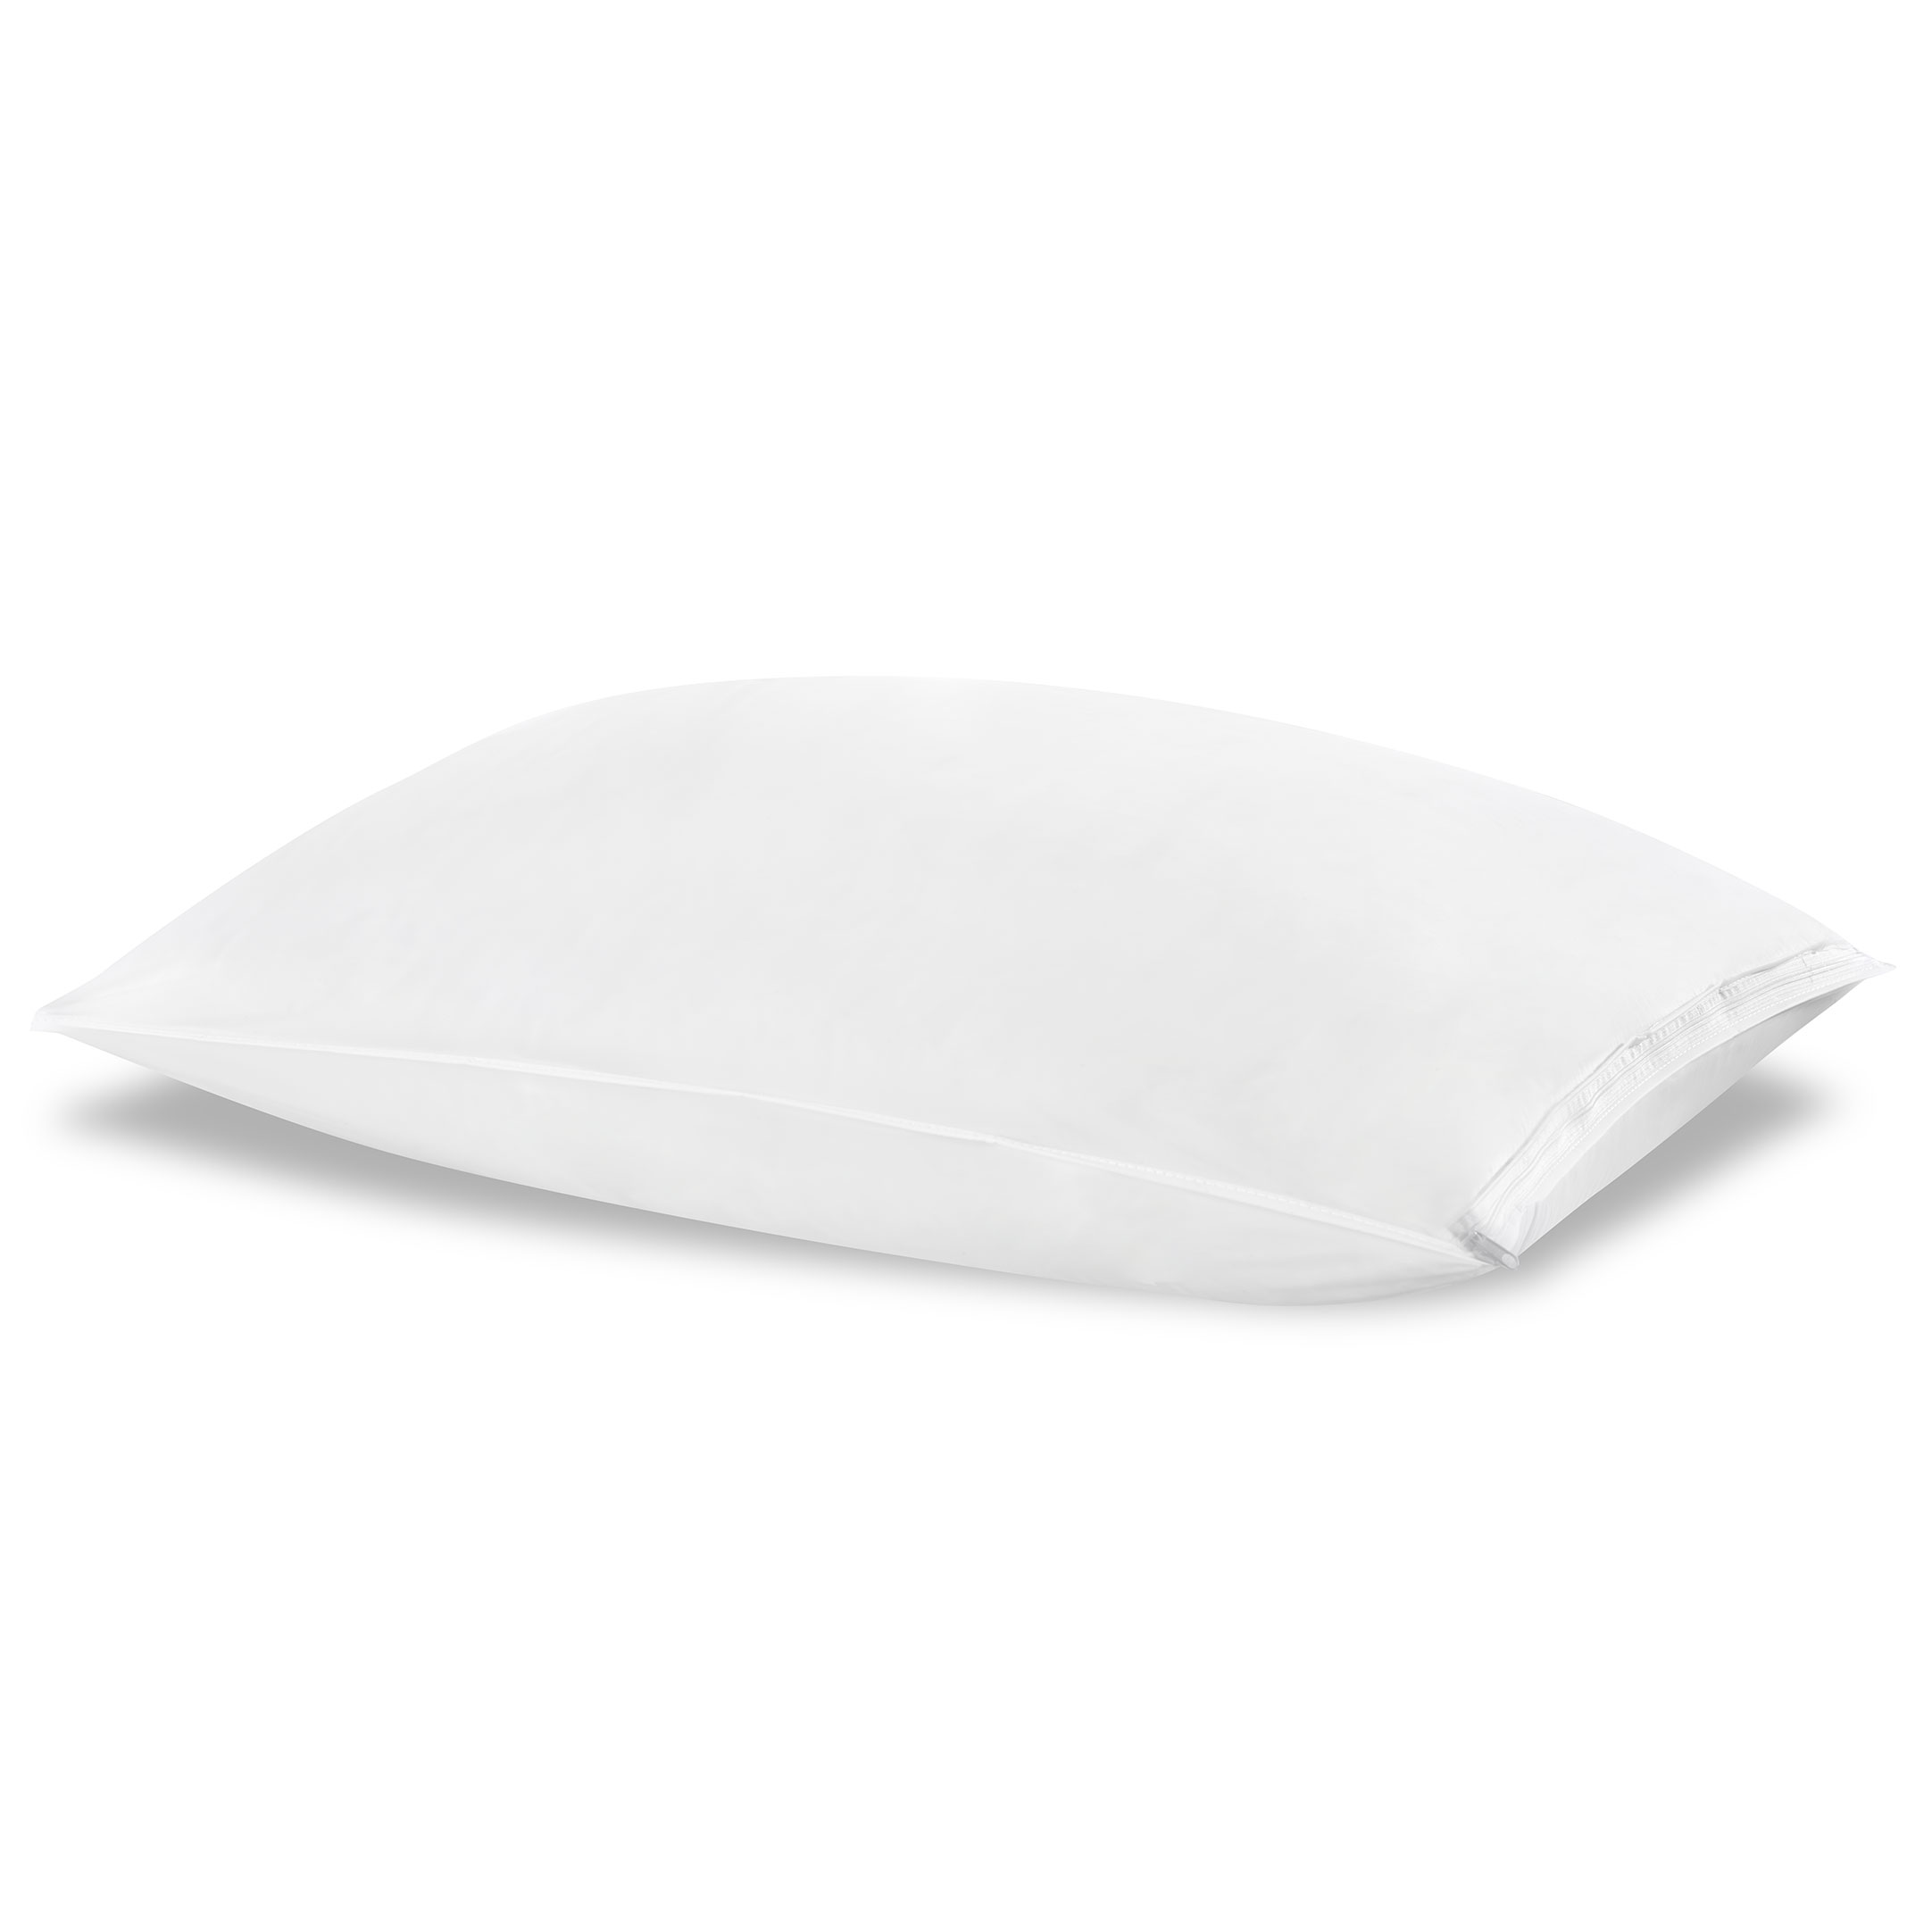 memory in protectors pillow for prices sale review safety protector special shop brands